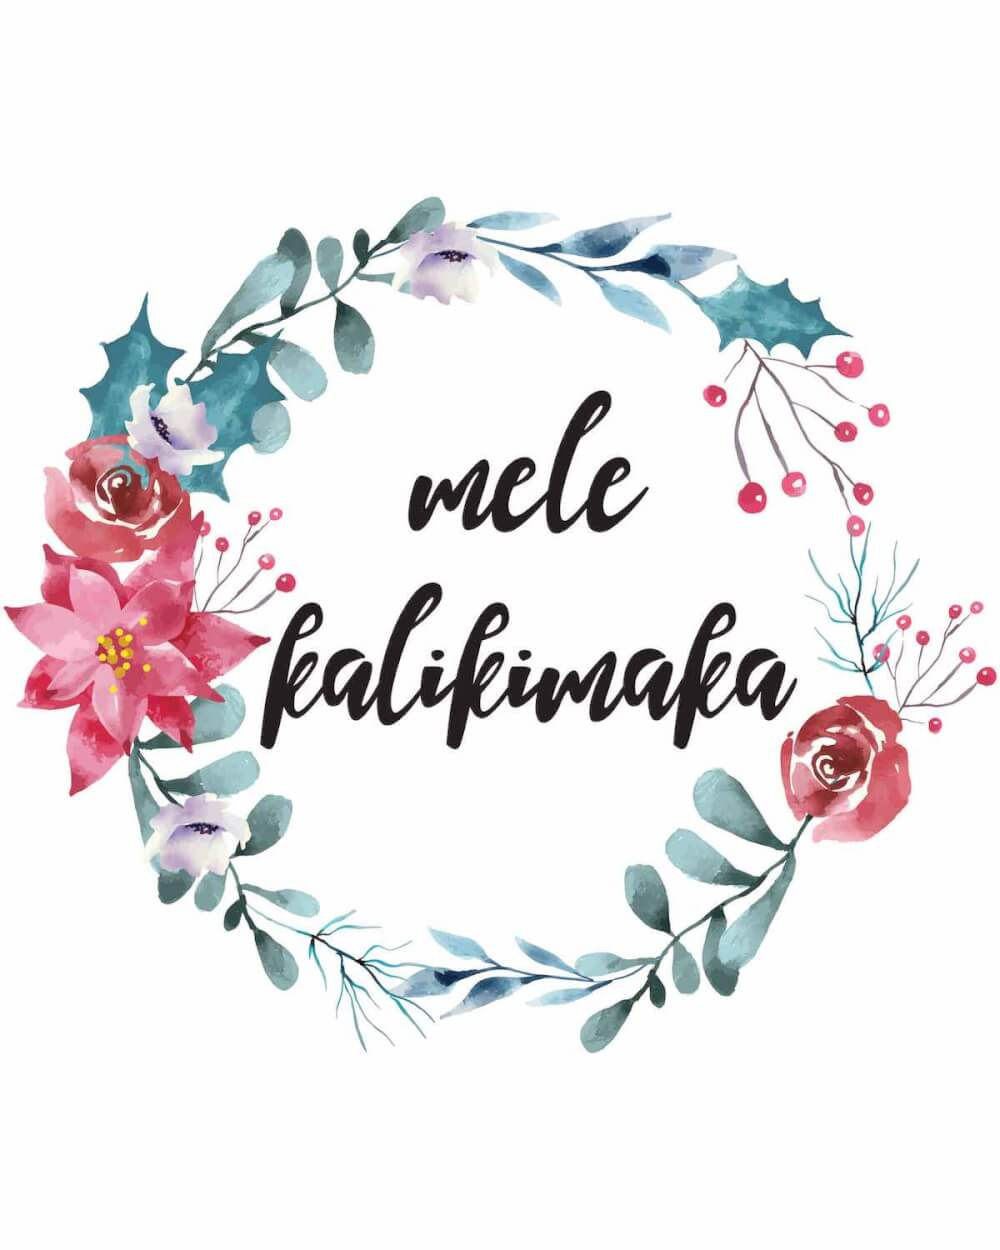 You'll want to download this adorable Mele Kalikimaka sign as part of your Hawaiian Christmas decorations. Image of a sign that says Mele Kalikimaka surrounded by tropical flowers.